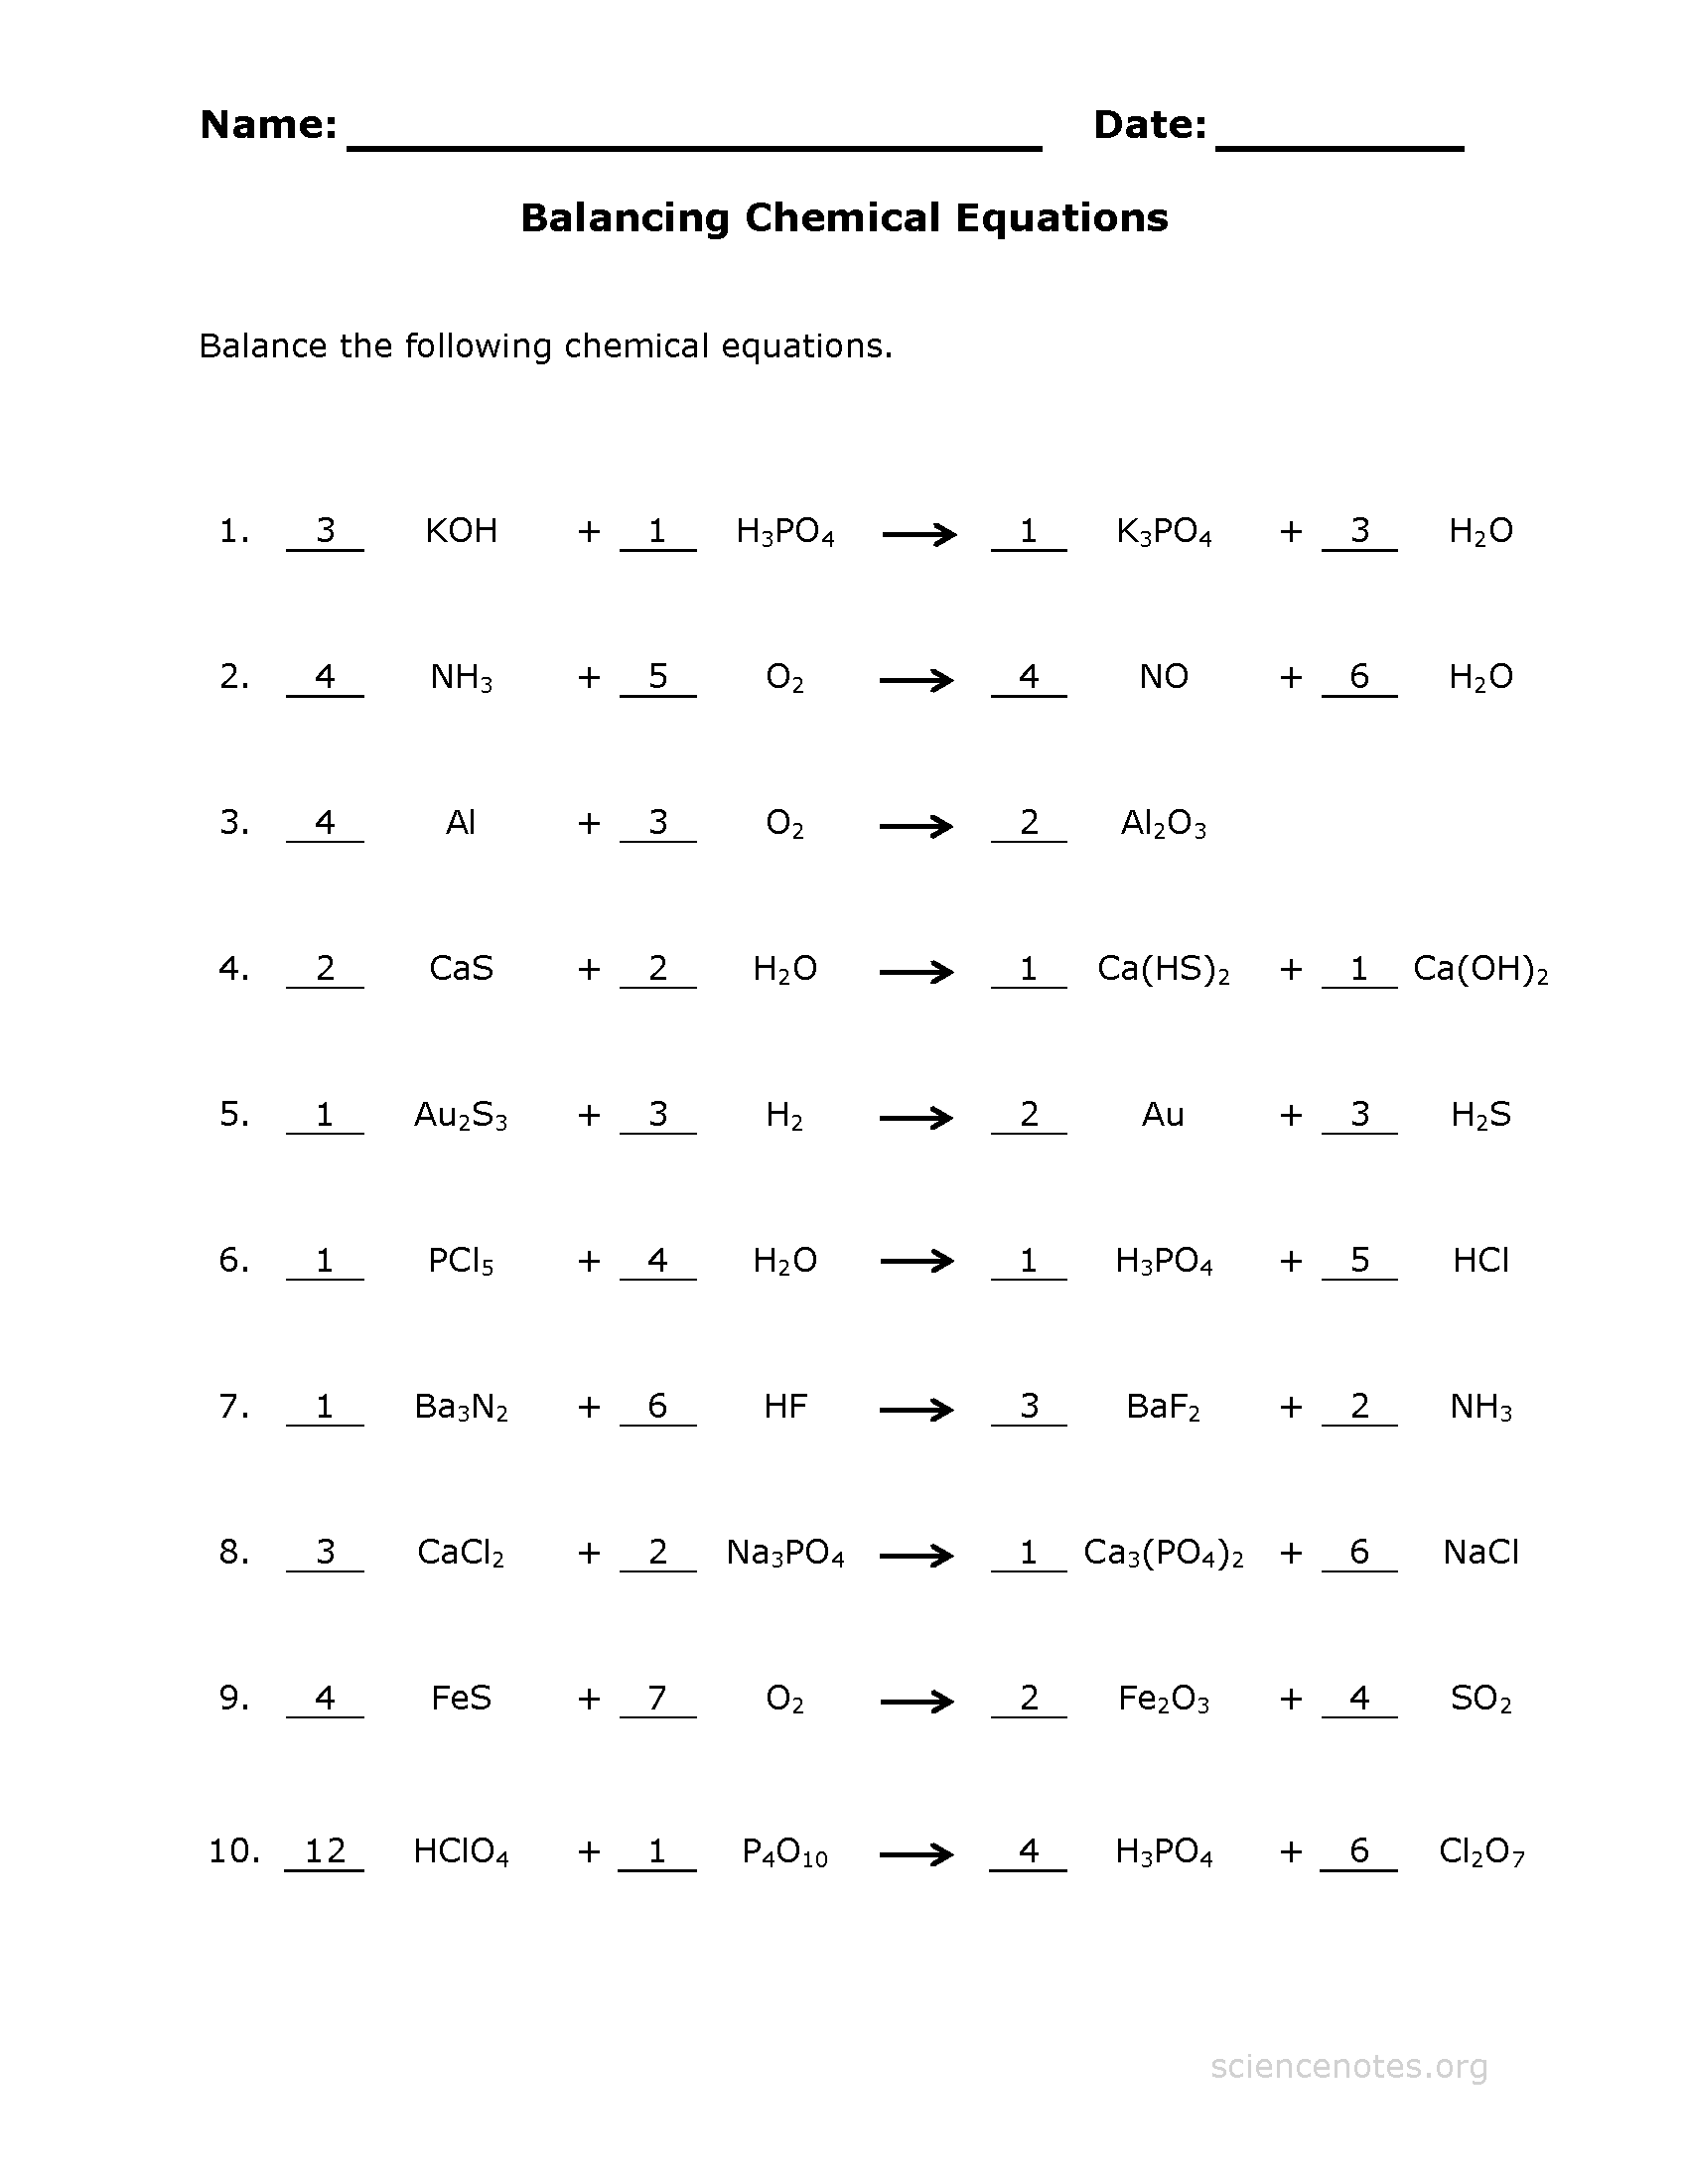 Free Worksheet Balancing Chemical Equations Worksheet 1 Answers balancing chemical equations worksheet rringband practice sheet